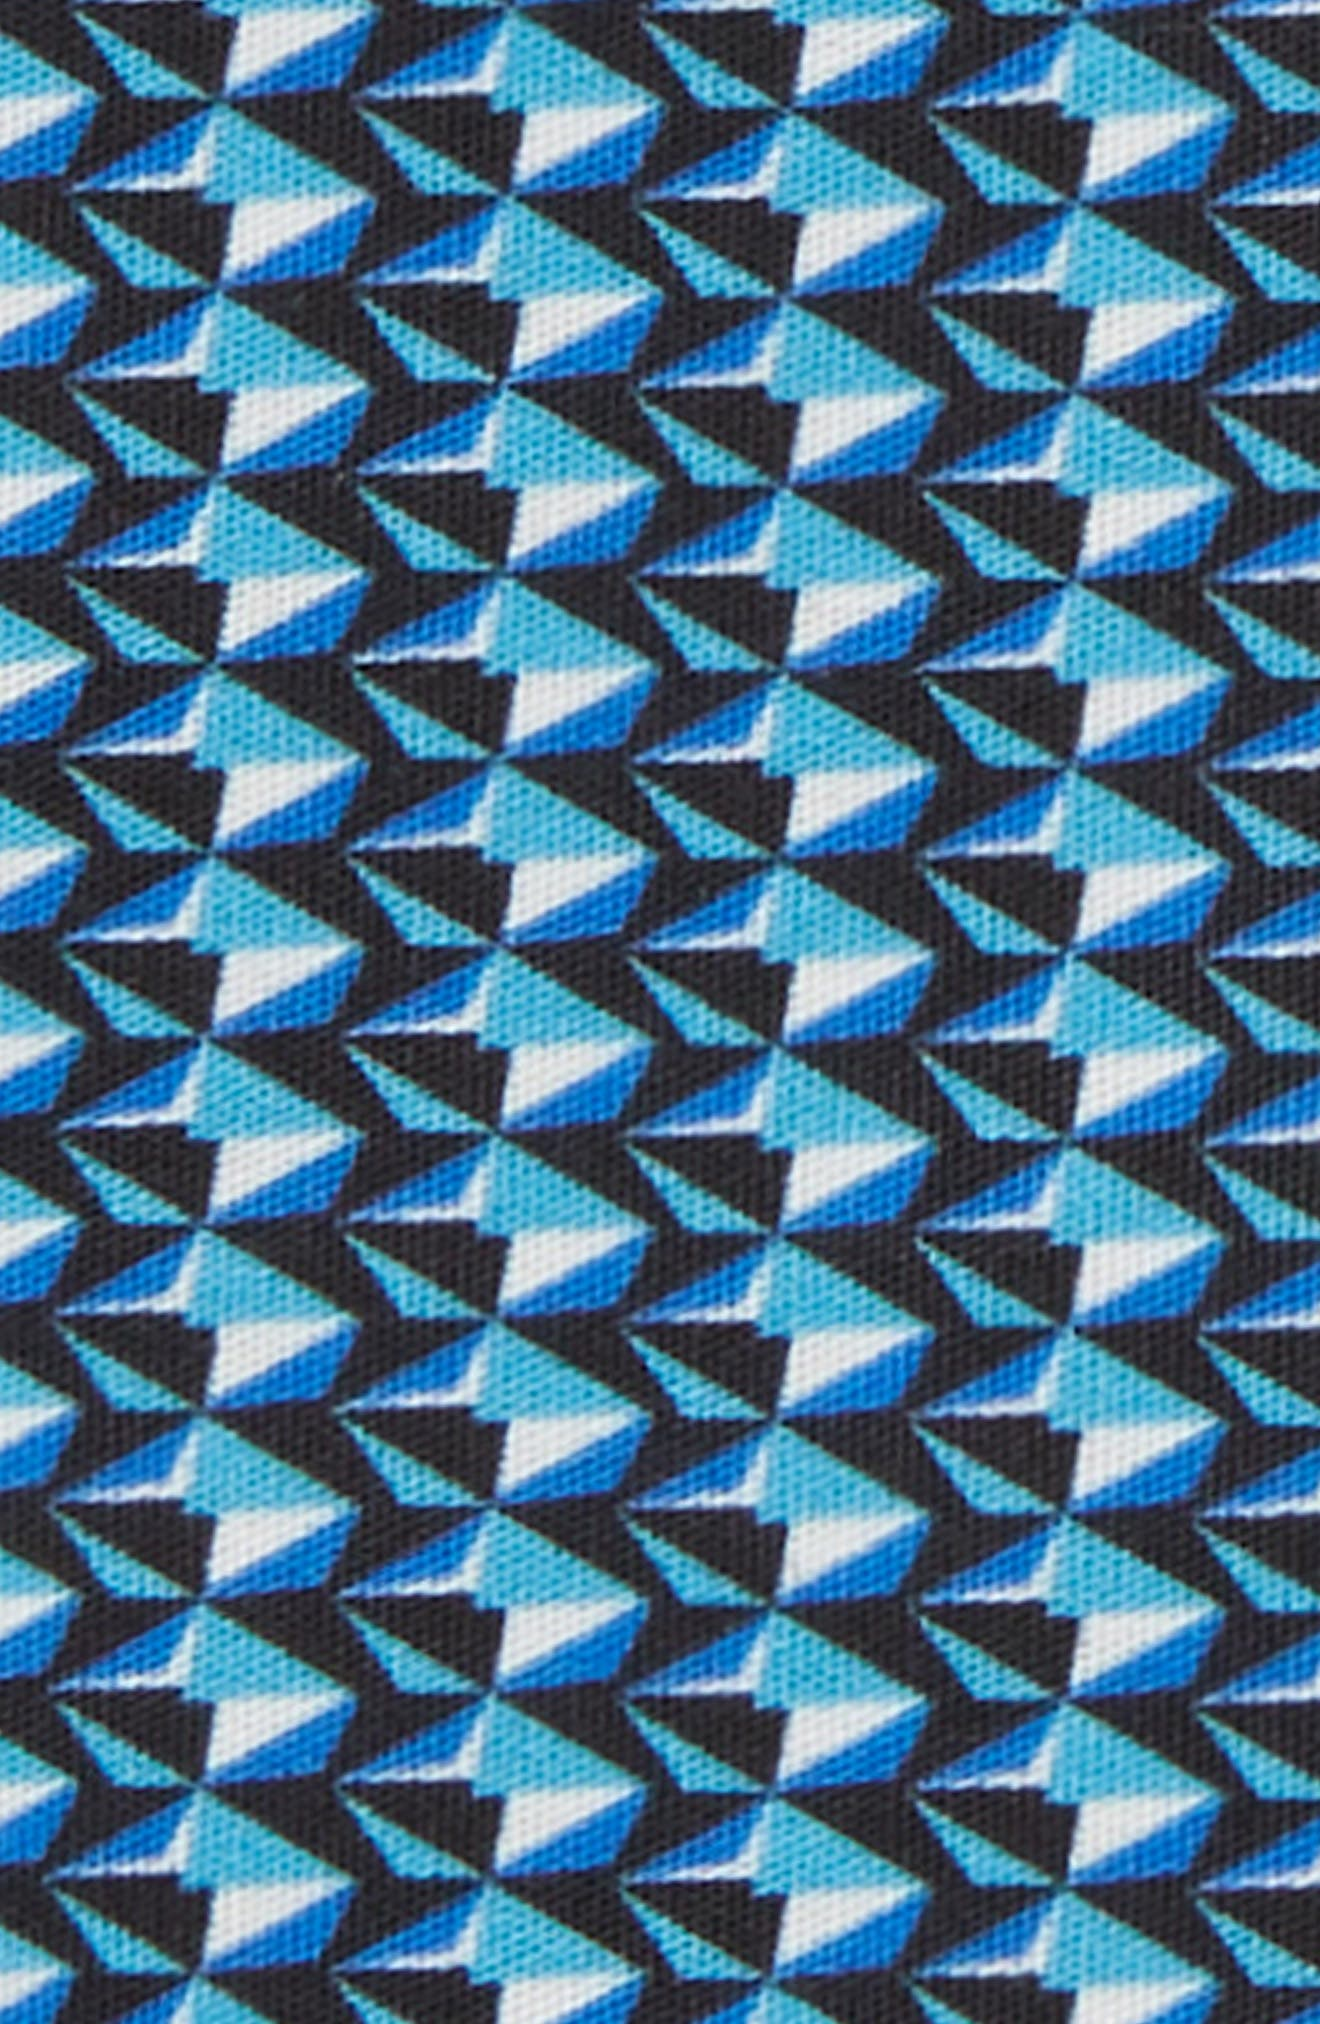 Geometric Cotton Pocket Square,                             Alternate thumbnail 3, color,                             DIAMOND GEO BLUE